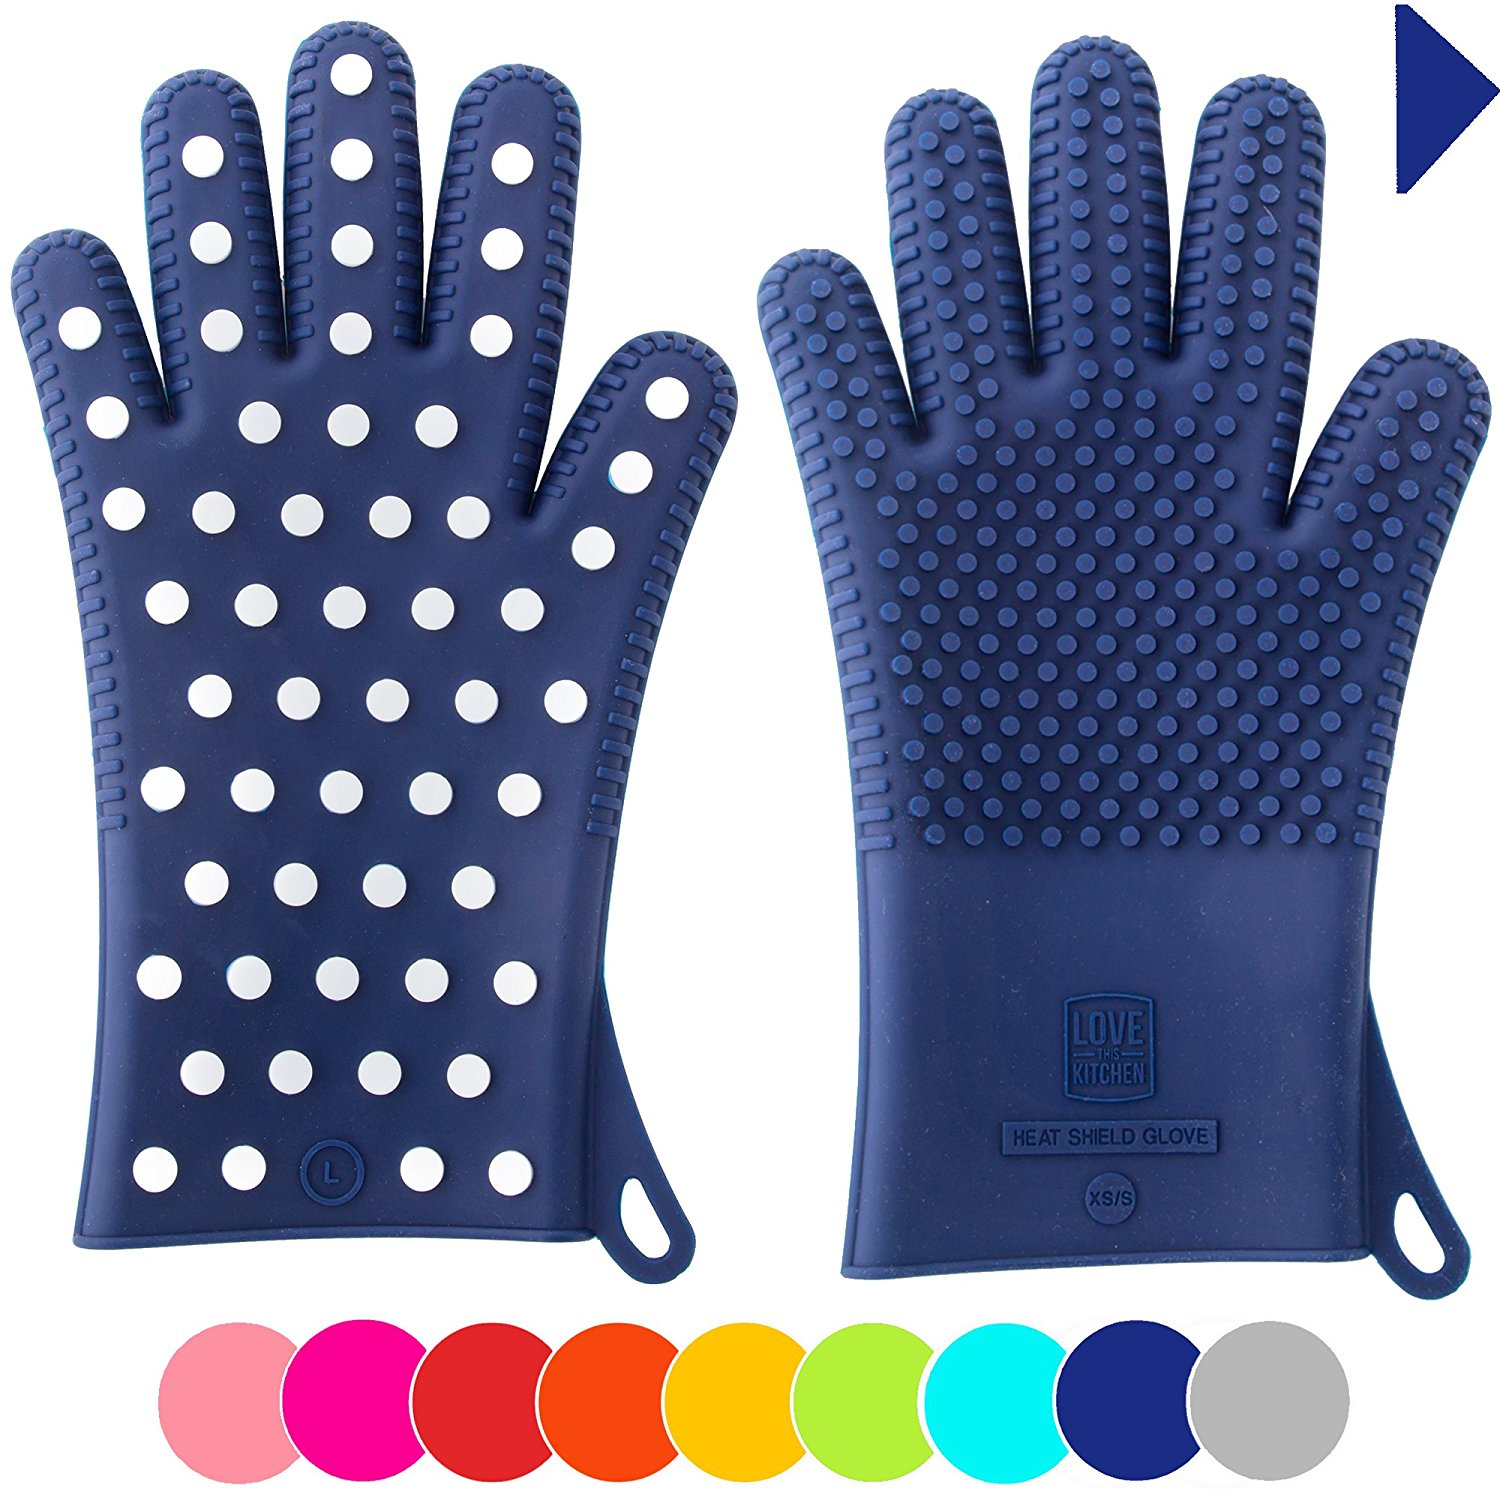 Heavy-Duty Woman's Silicone Oven Mitts | 25+ Gifts for Her